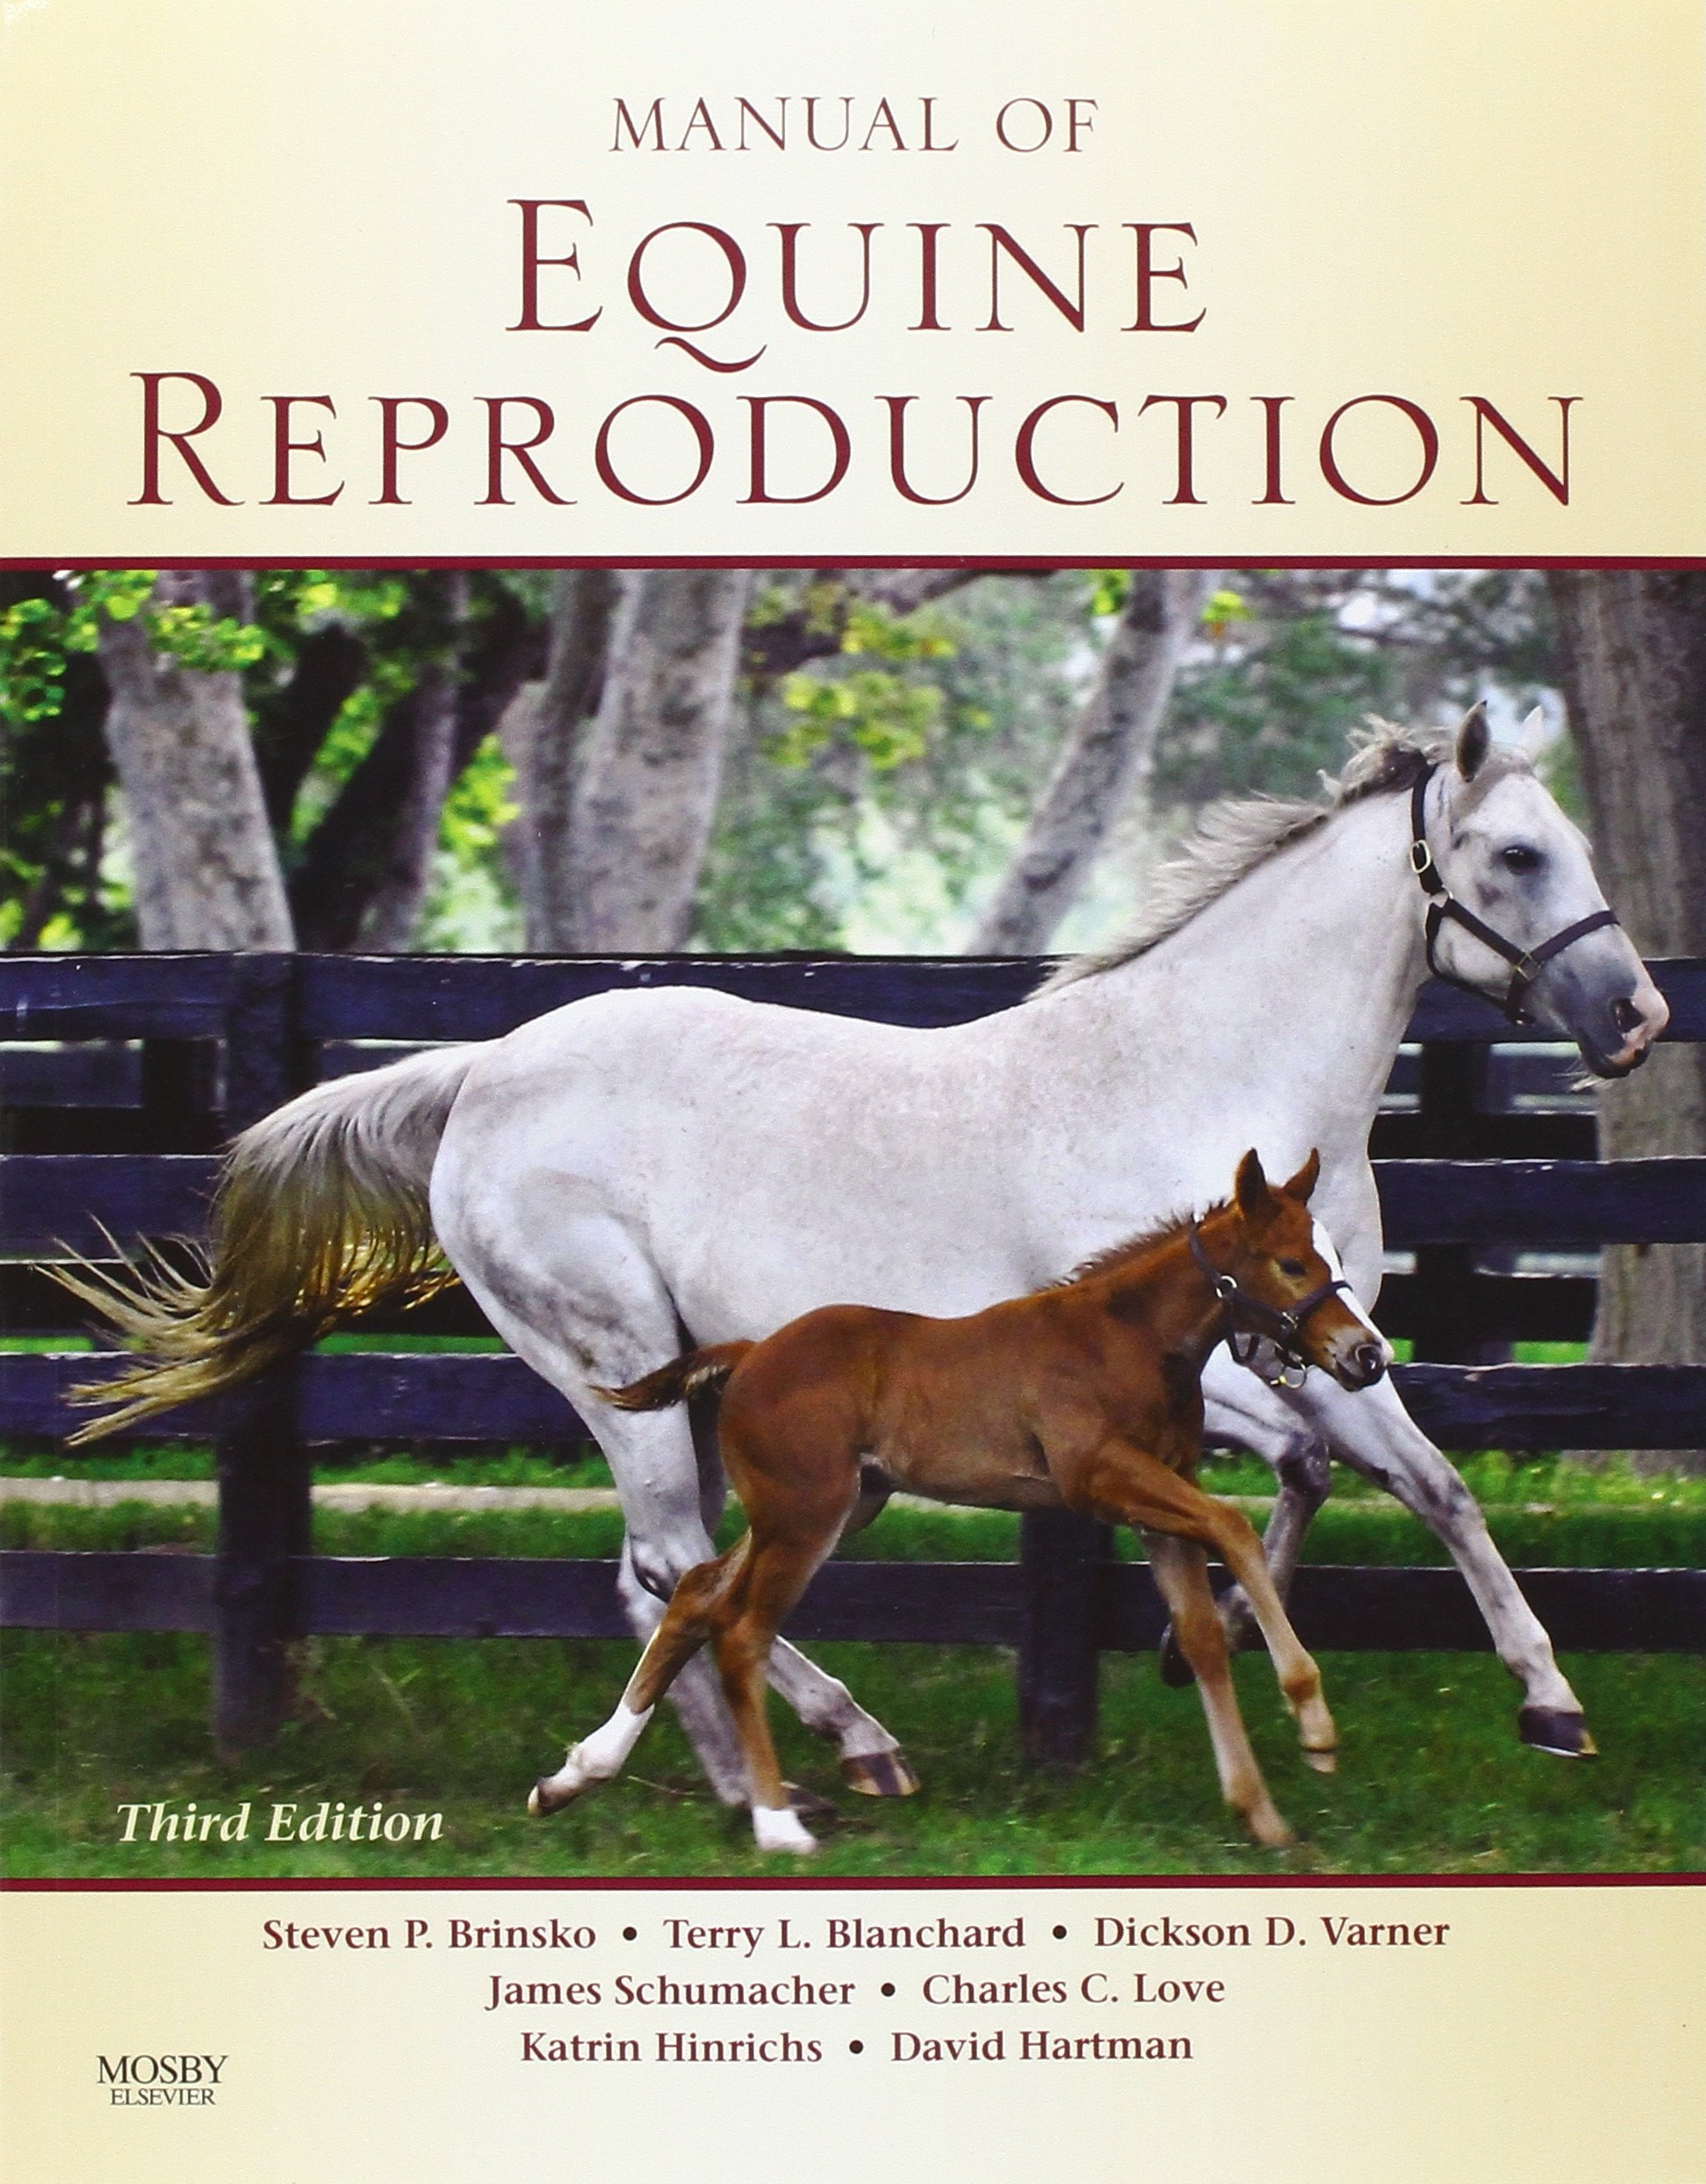 Image OfManual Of Equine Reproduction